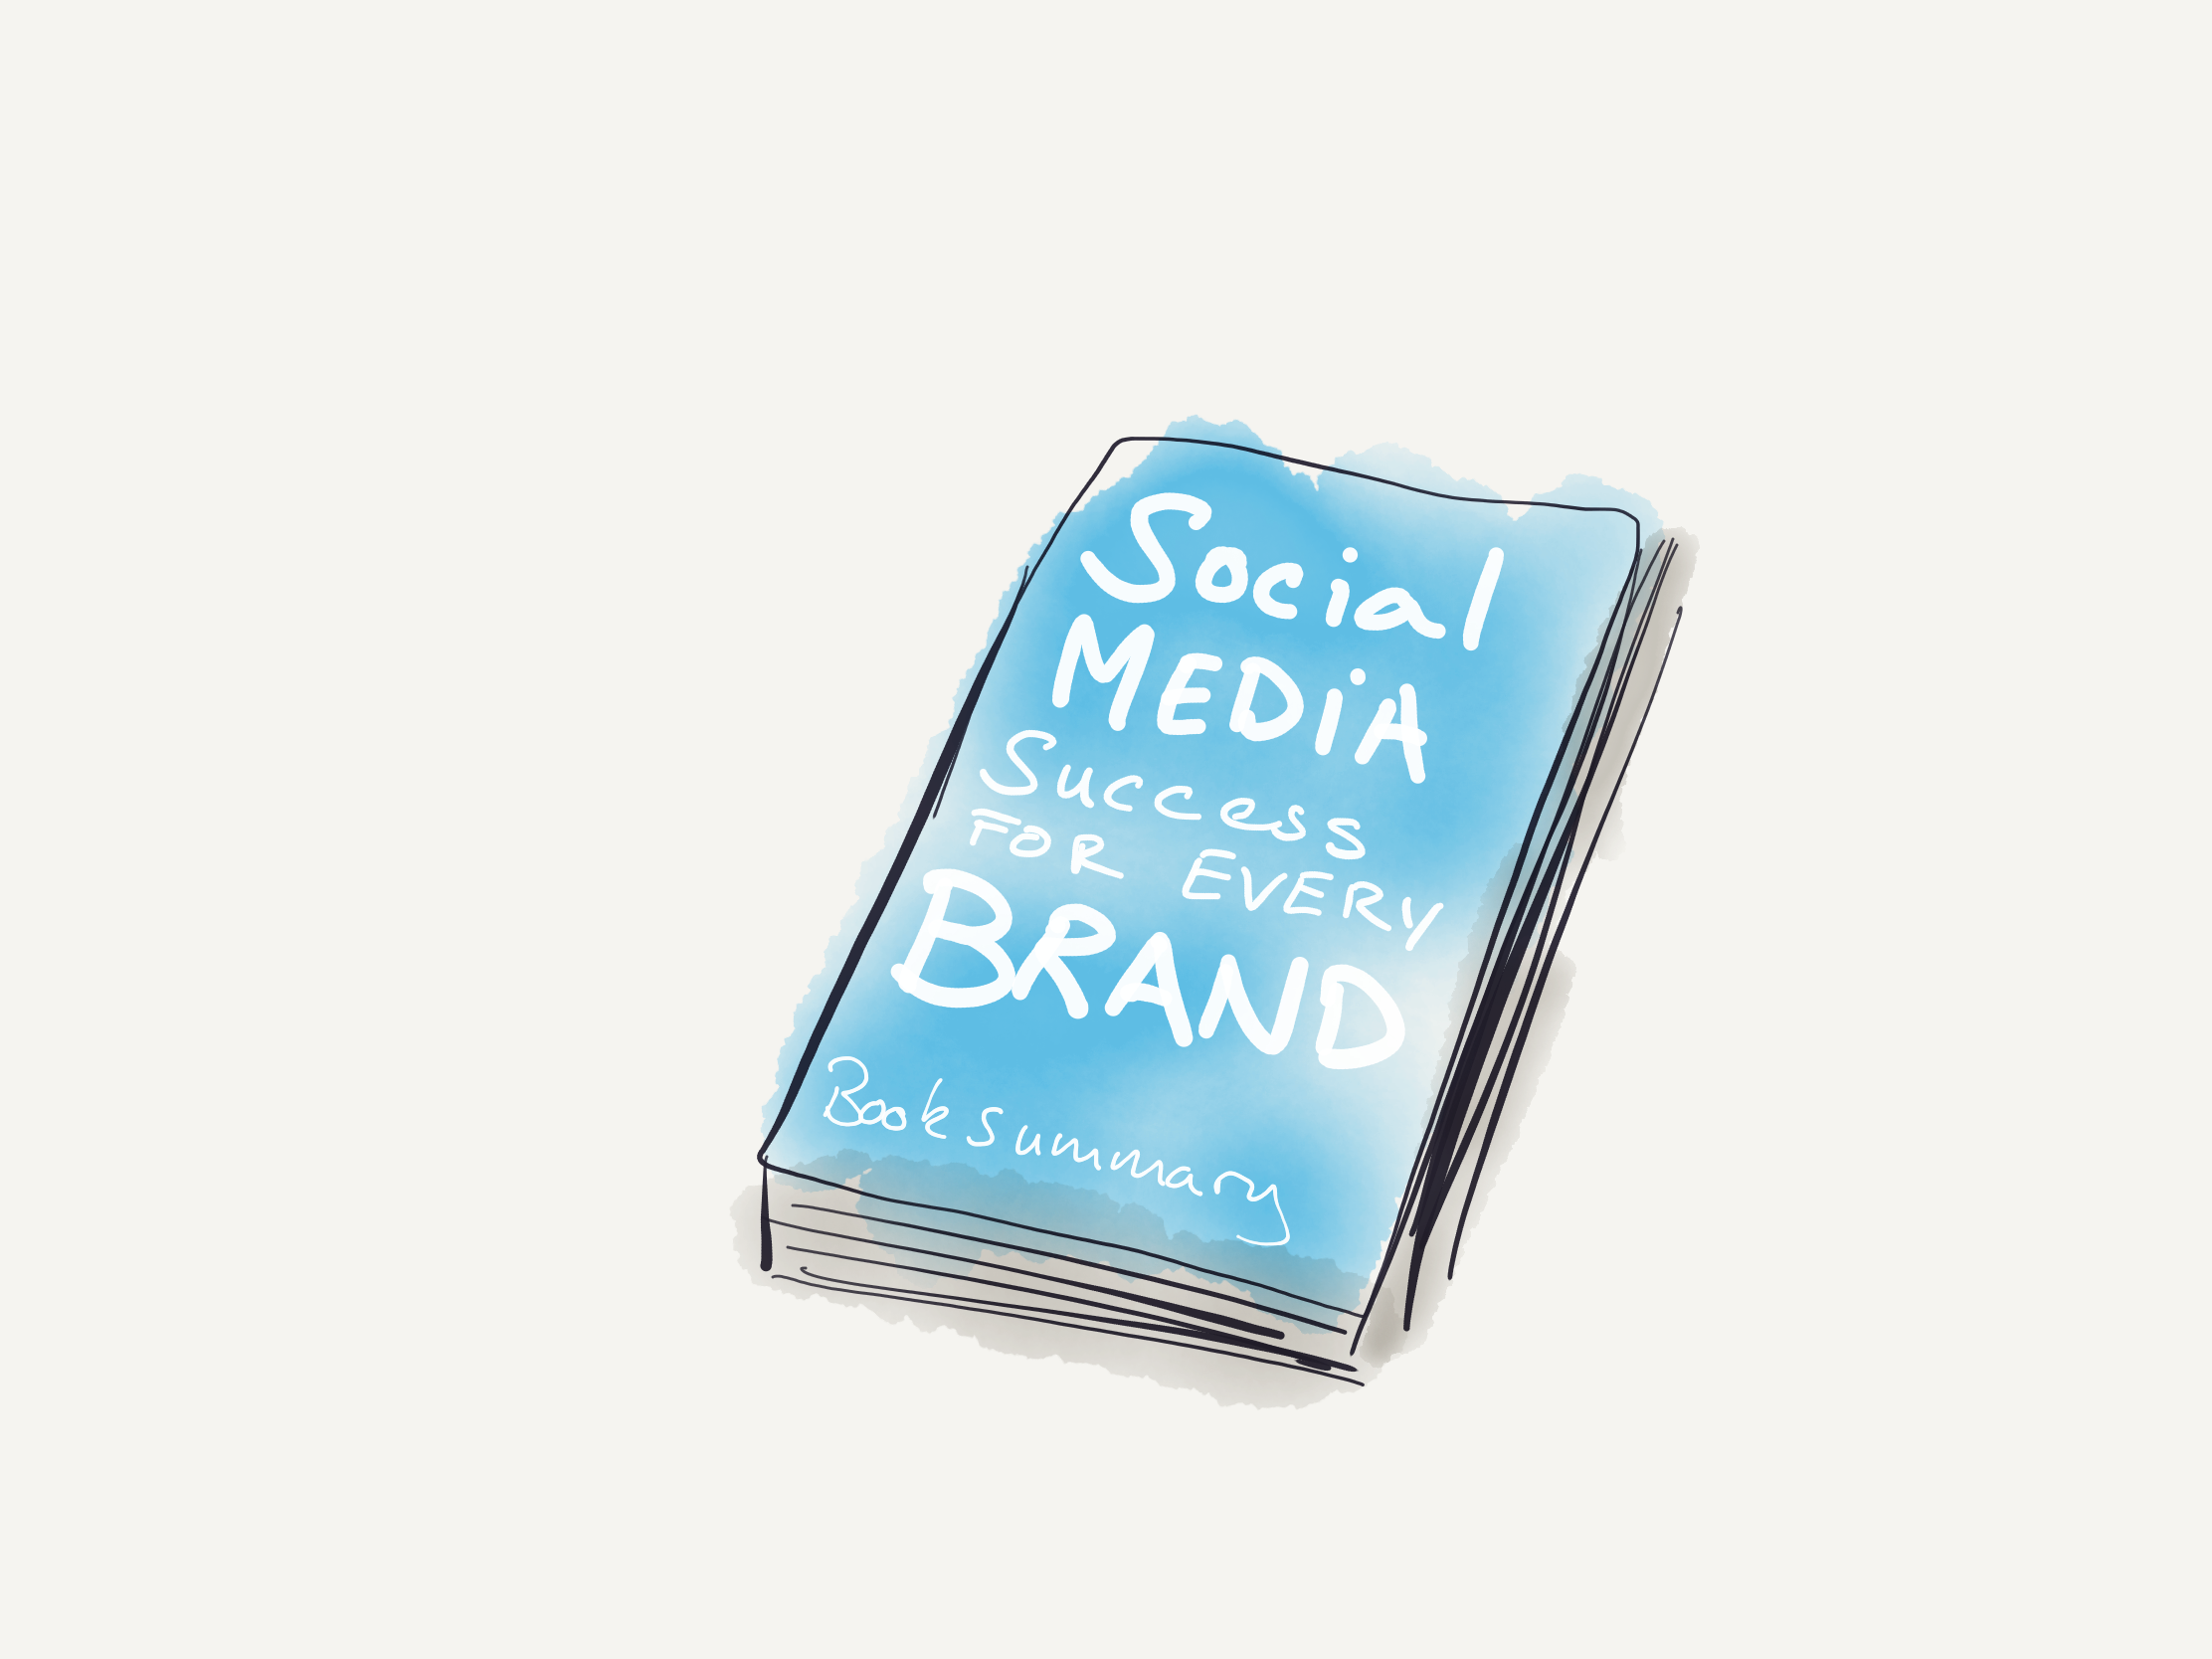 Social media success for every brand book summary